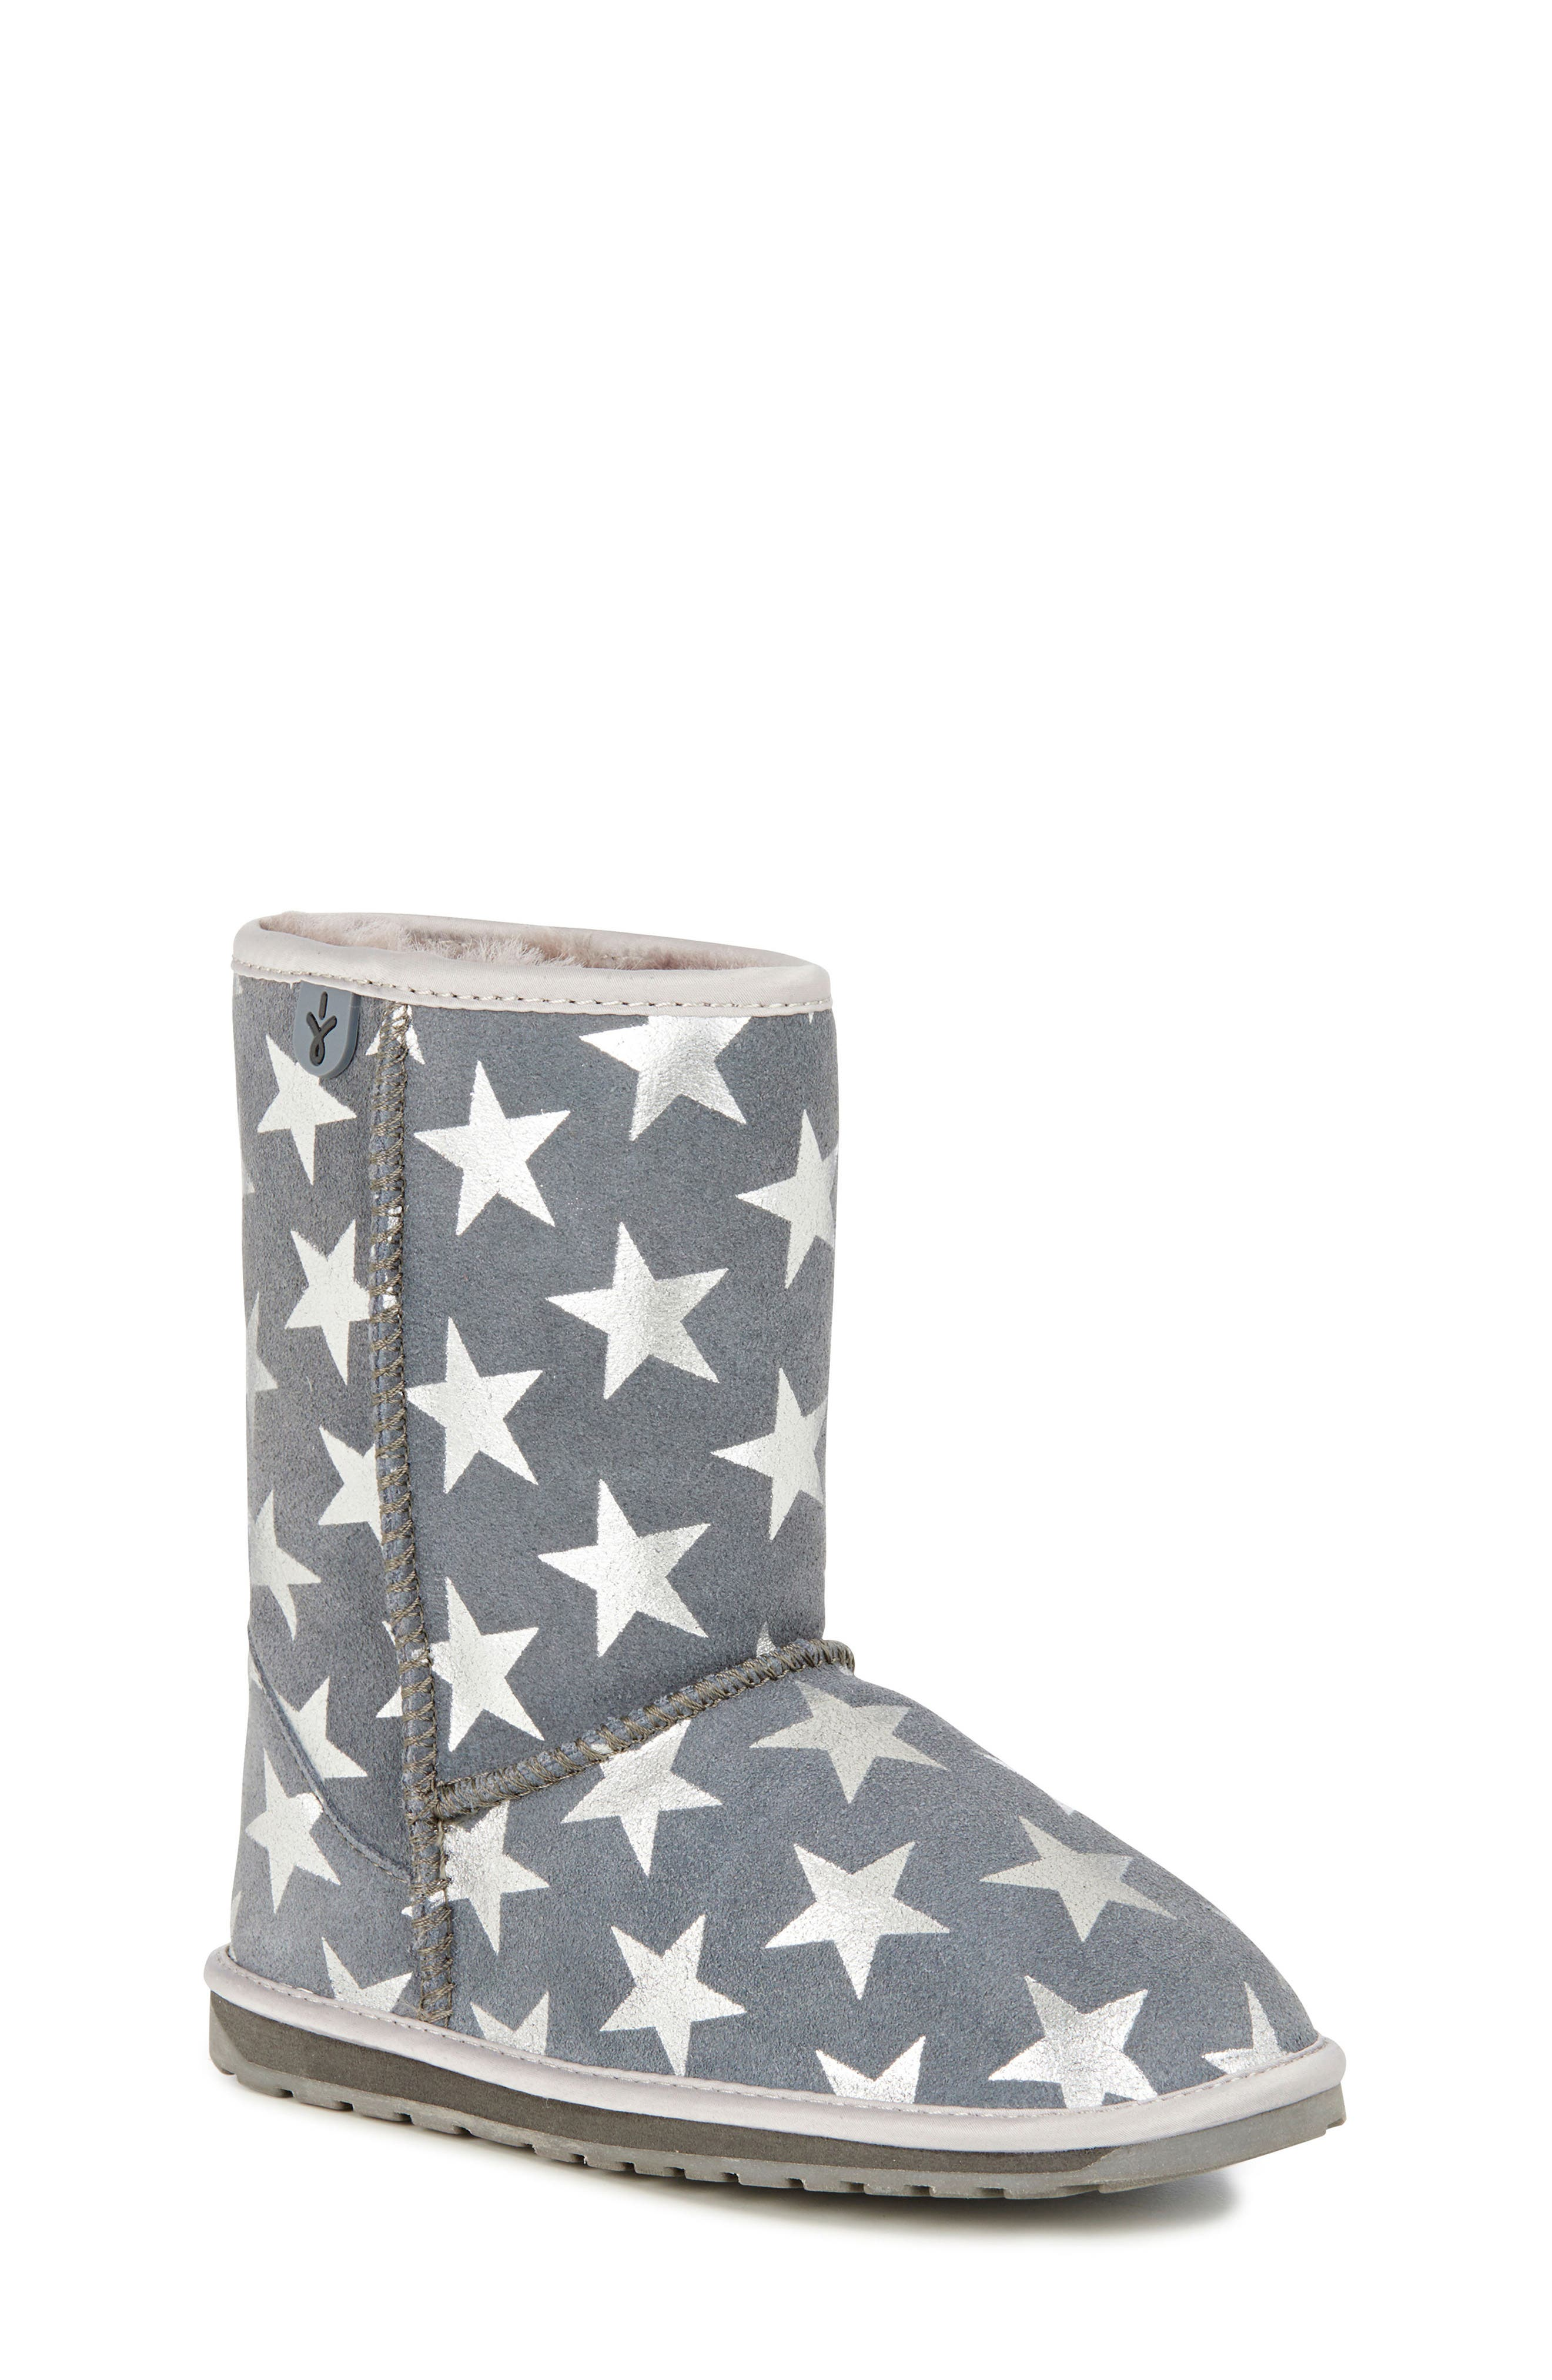 EMUAustralia Starry Night Boot,                         Main,                         color, CHARCOAL